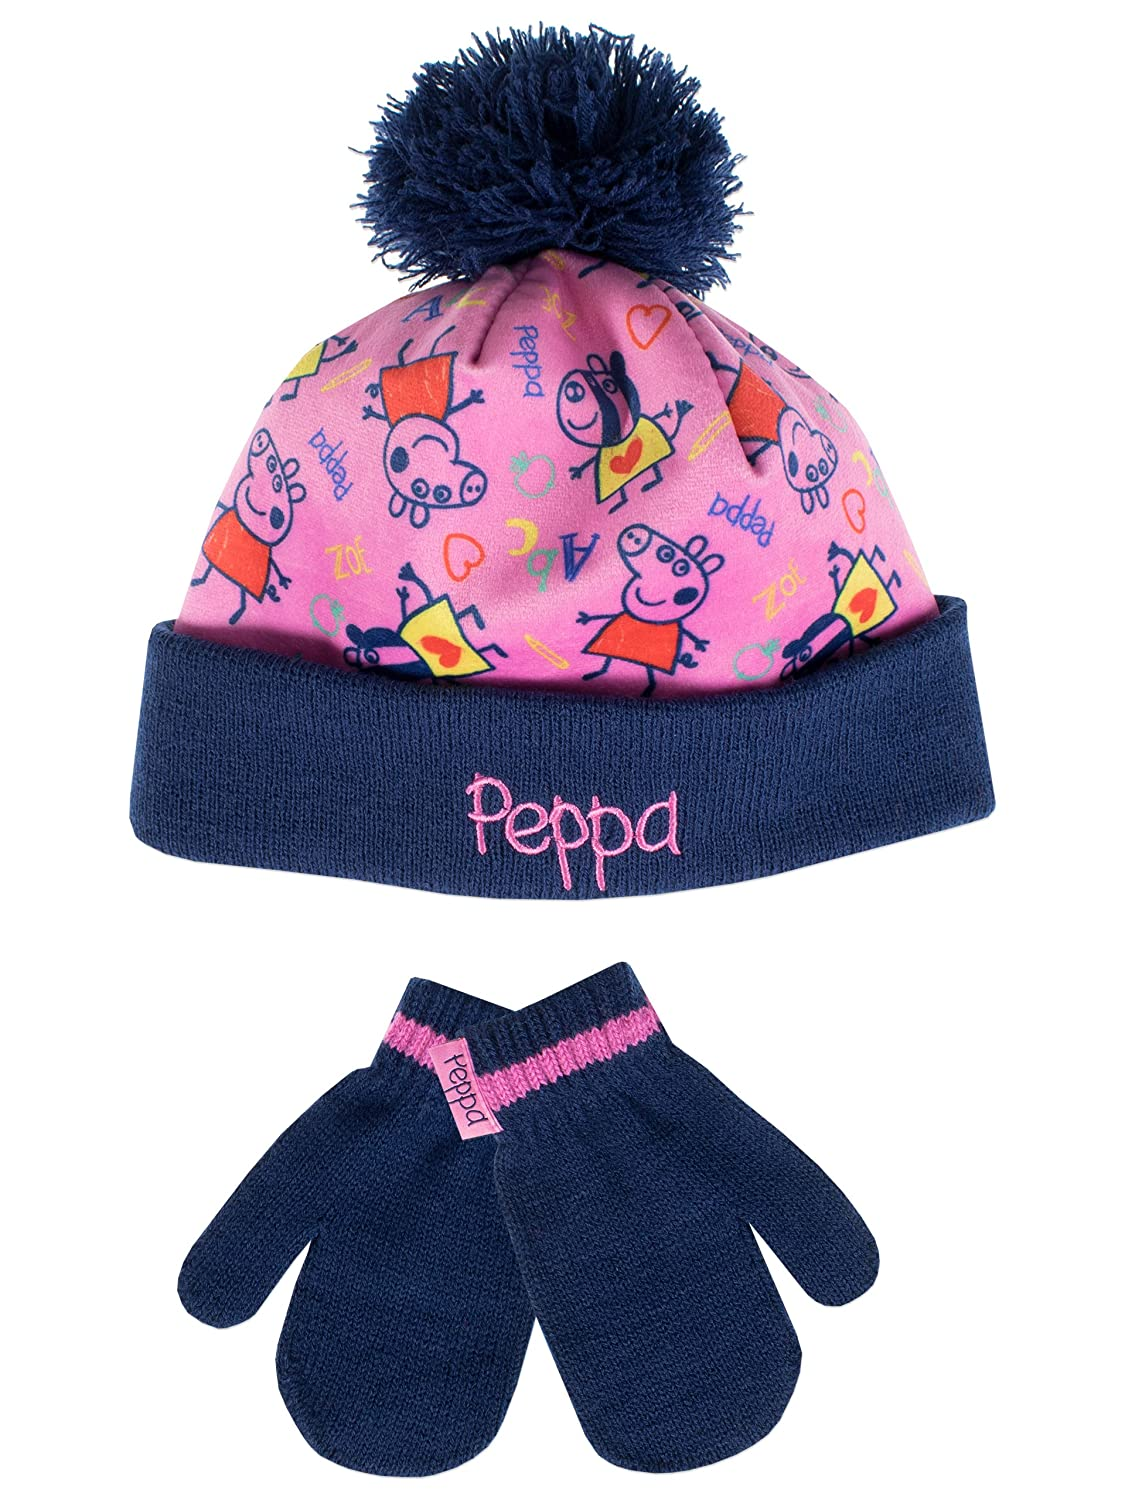 Peppa Pig Girls' Peppa Pig Hat and Gloves Set